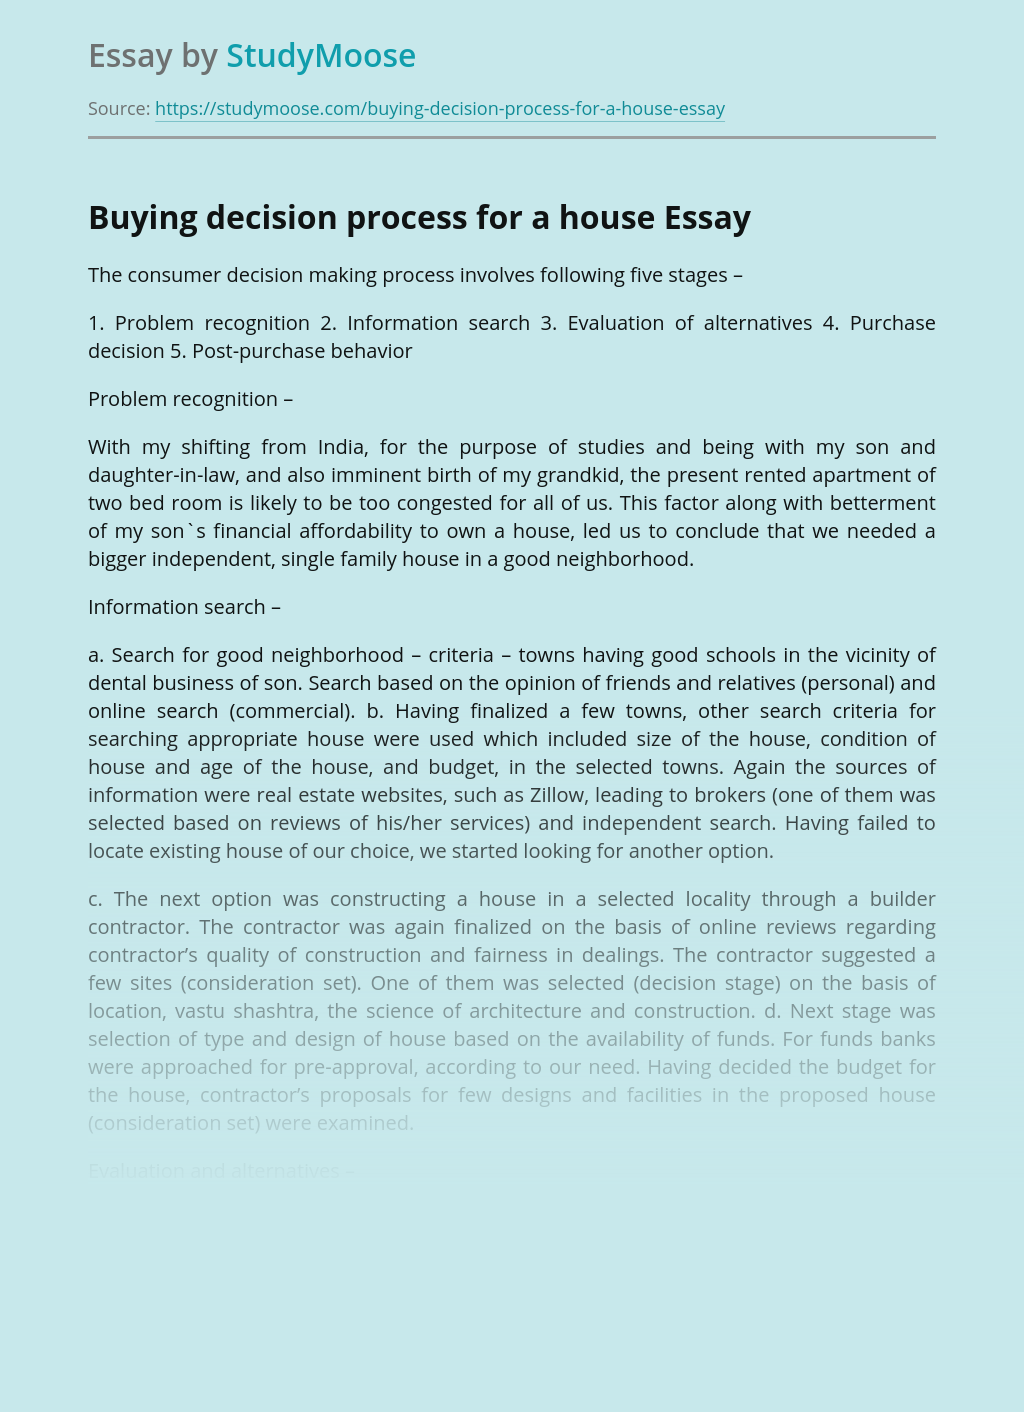 Buying decision process for a house